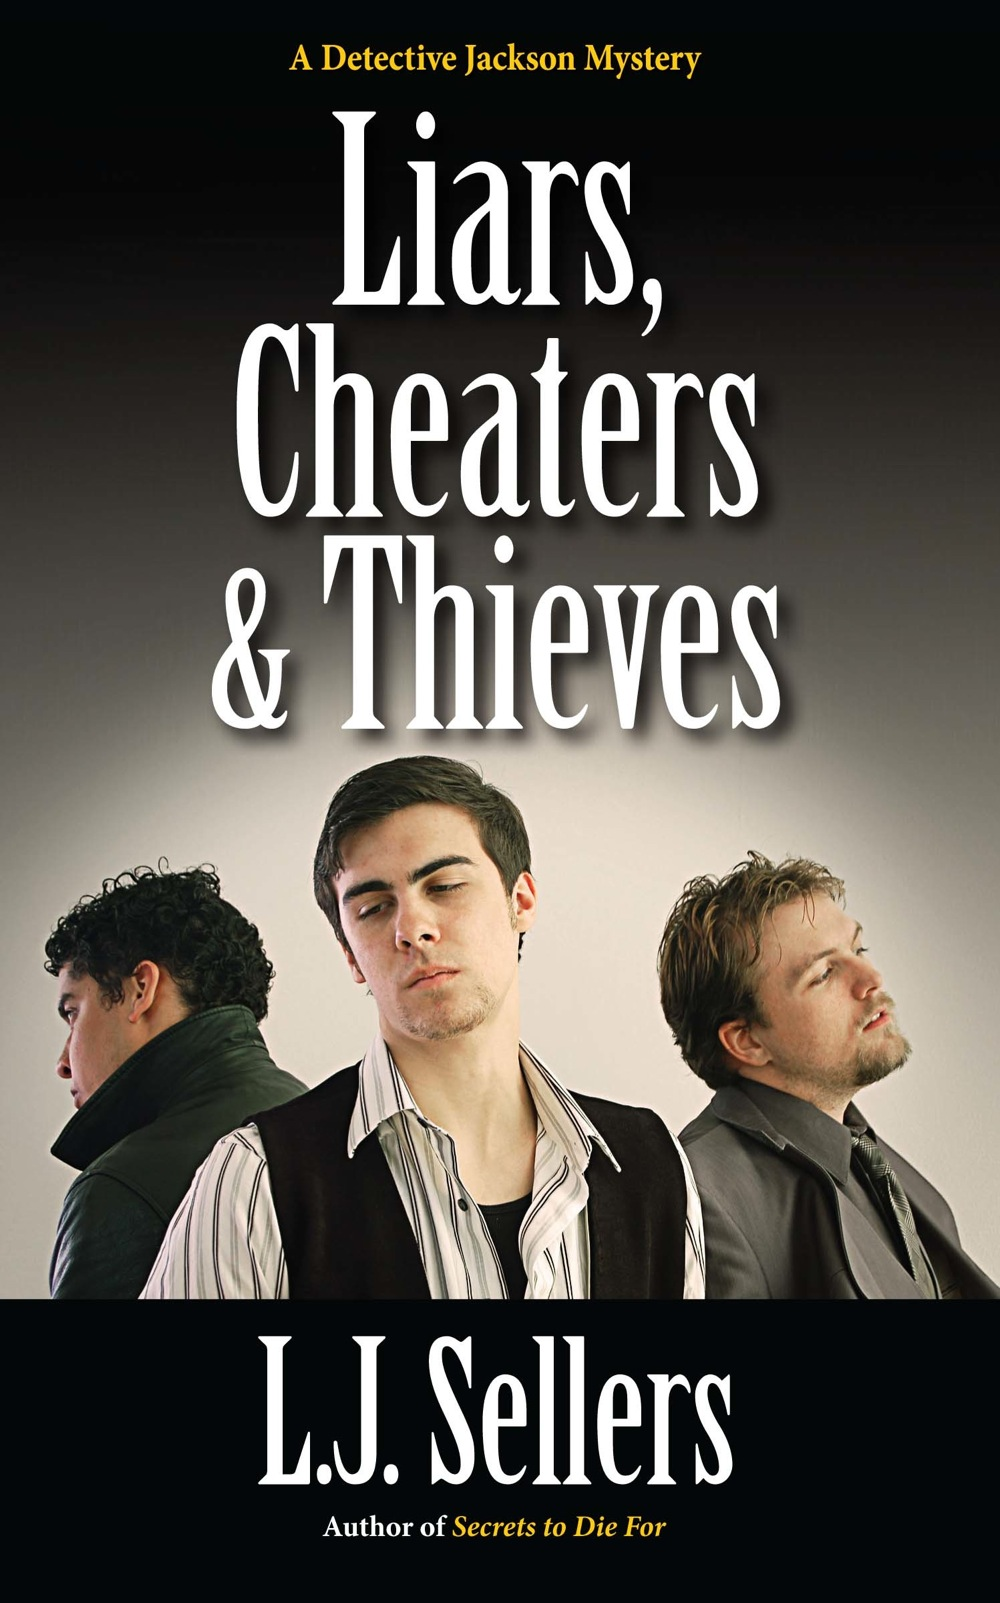 Quotes about Cheaters and Liars http://managedprintsolutions-online.com/picsxxvr/quotes-about-cheating-men-and-liars